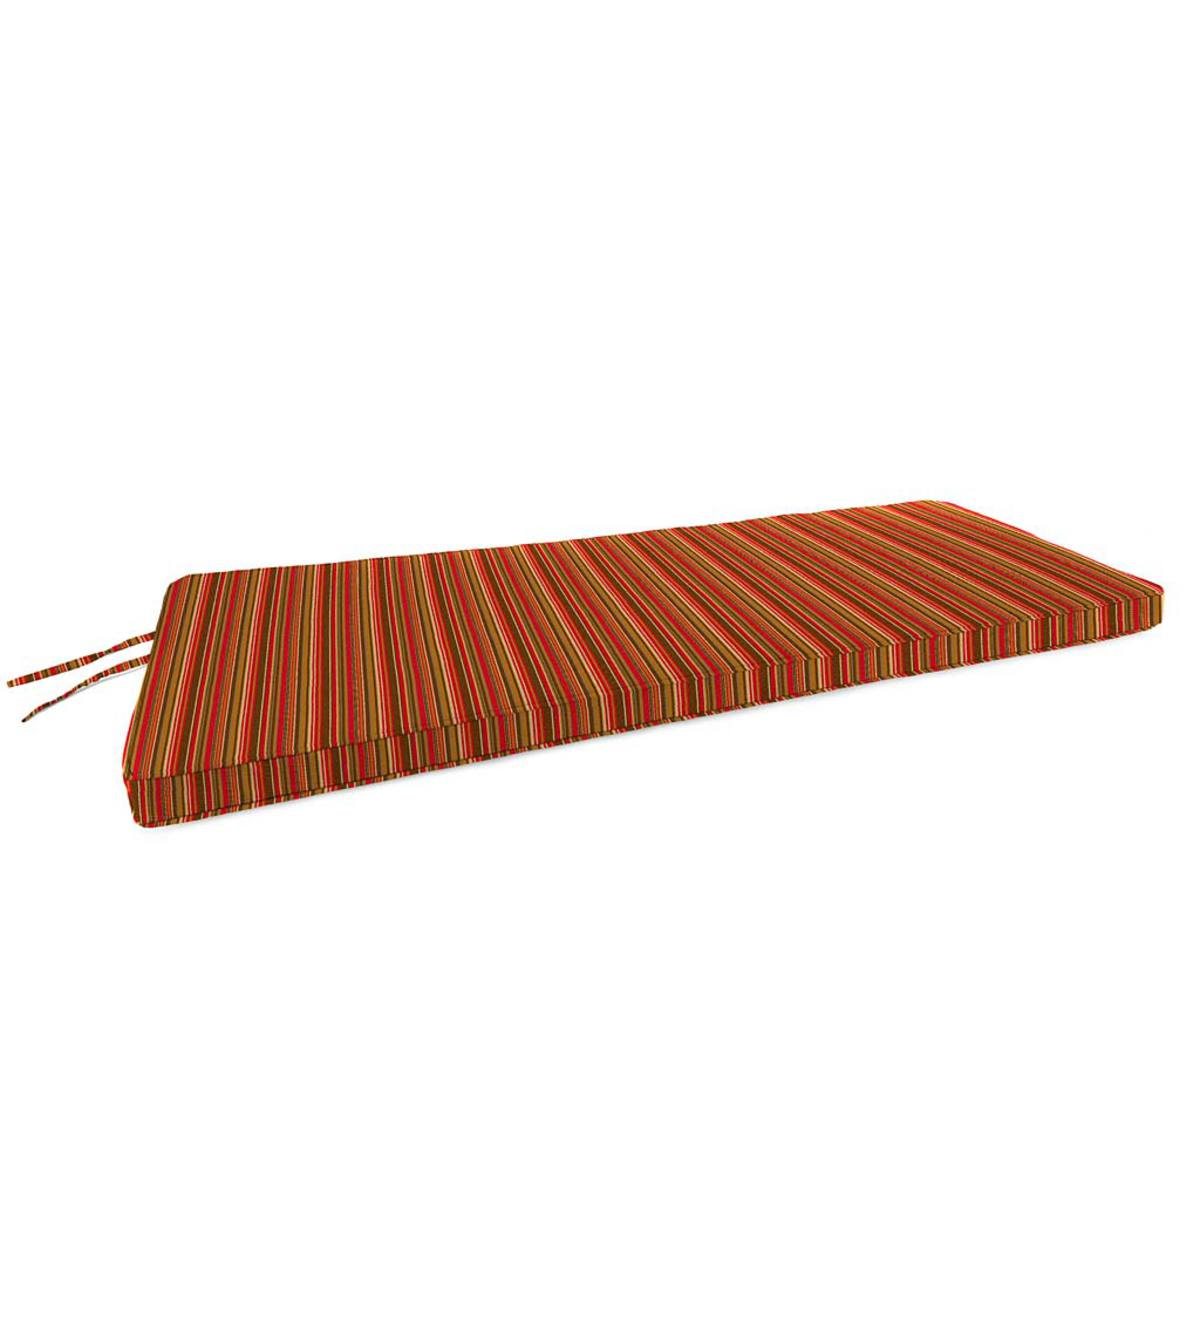 "Deluxe Sunbrella Swing/Bench Cushion with ties 40"" x 20"" x 3""H - Cherry Stripe"